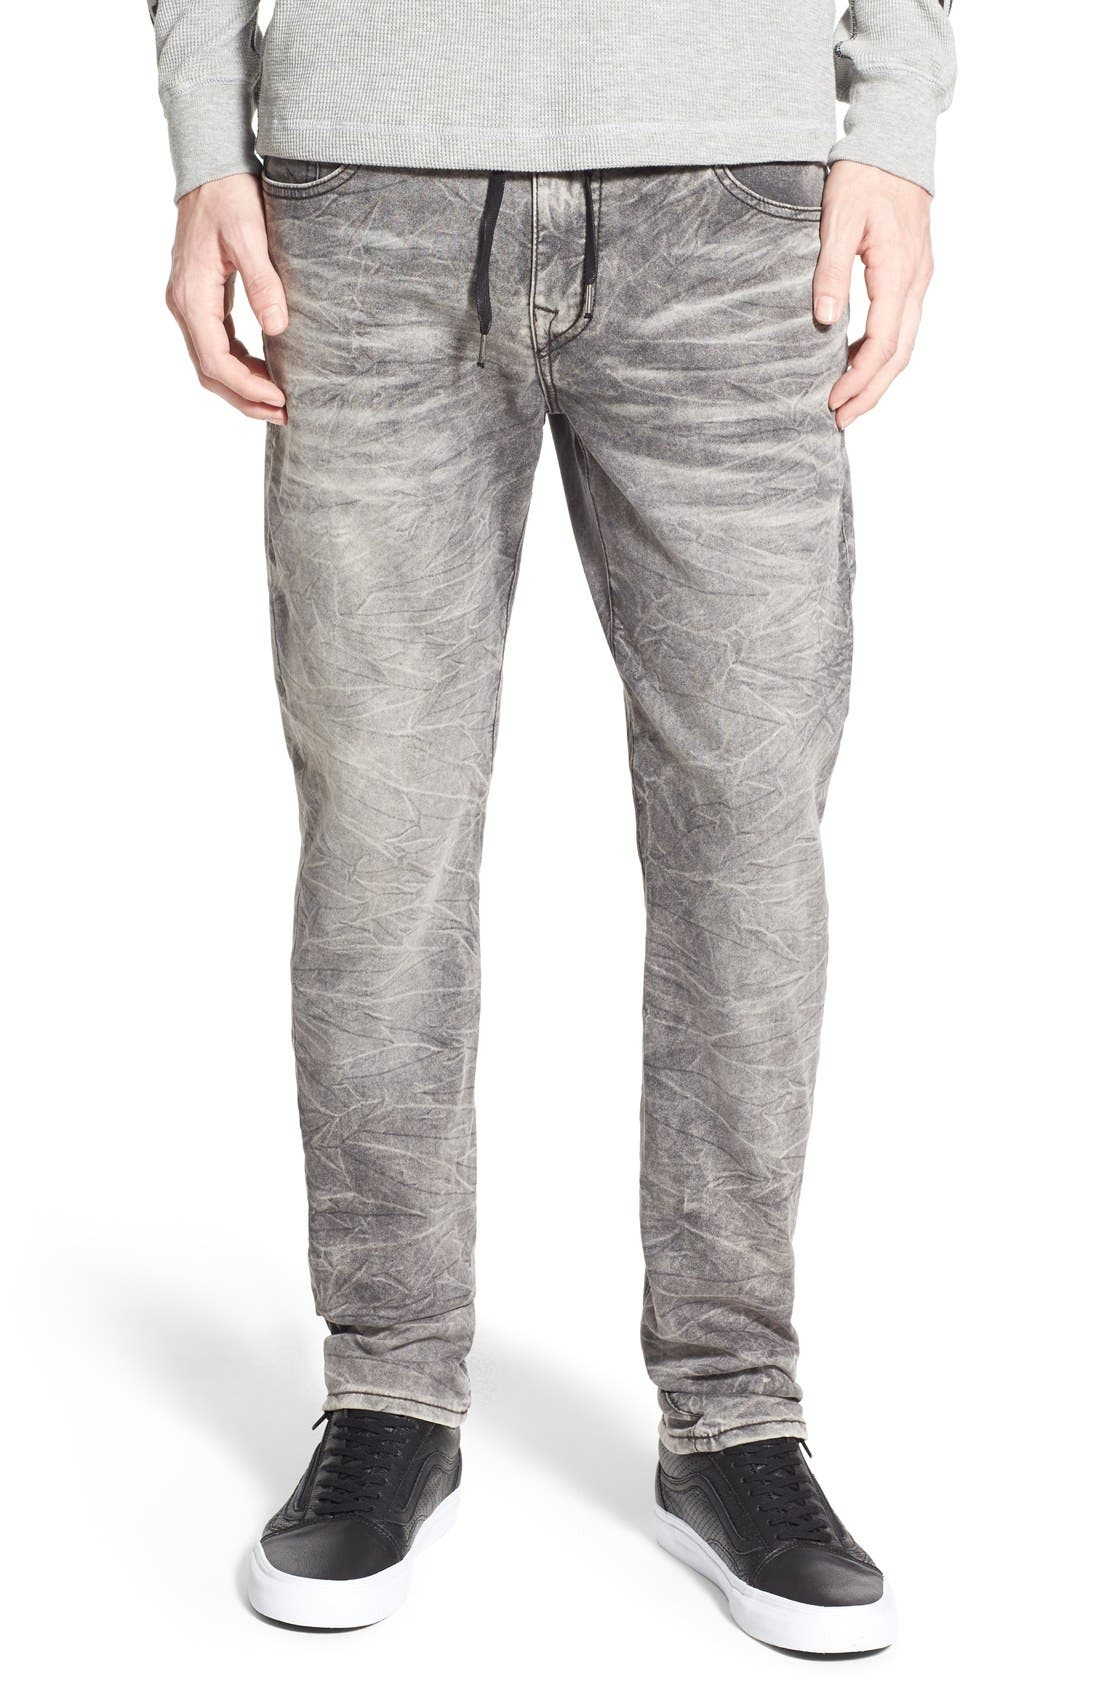 'Dean' Tapered Fit Denim Active Jogger Pants,                             Main thumbnail 1, color,                             Fog Grey